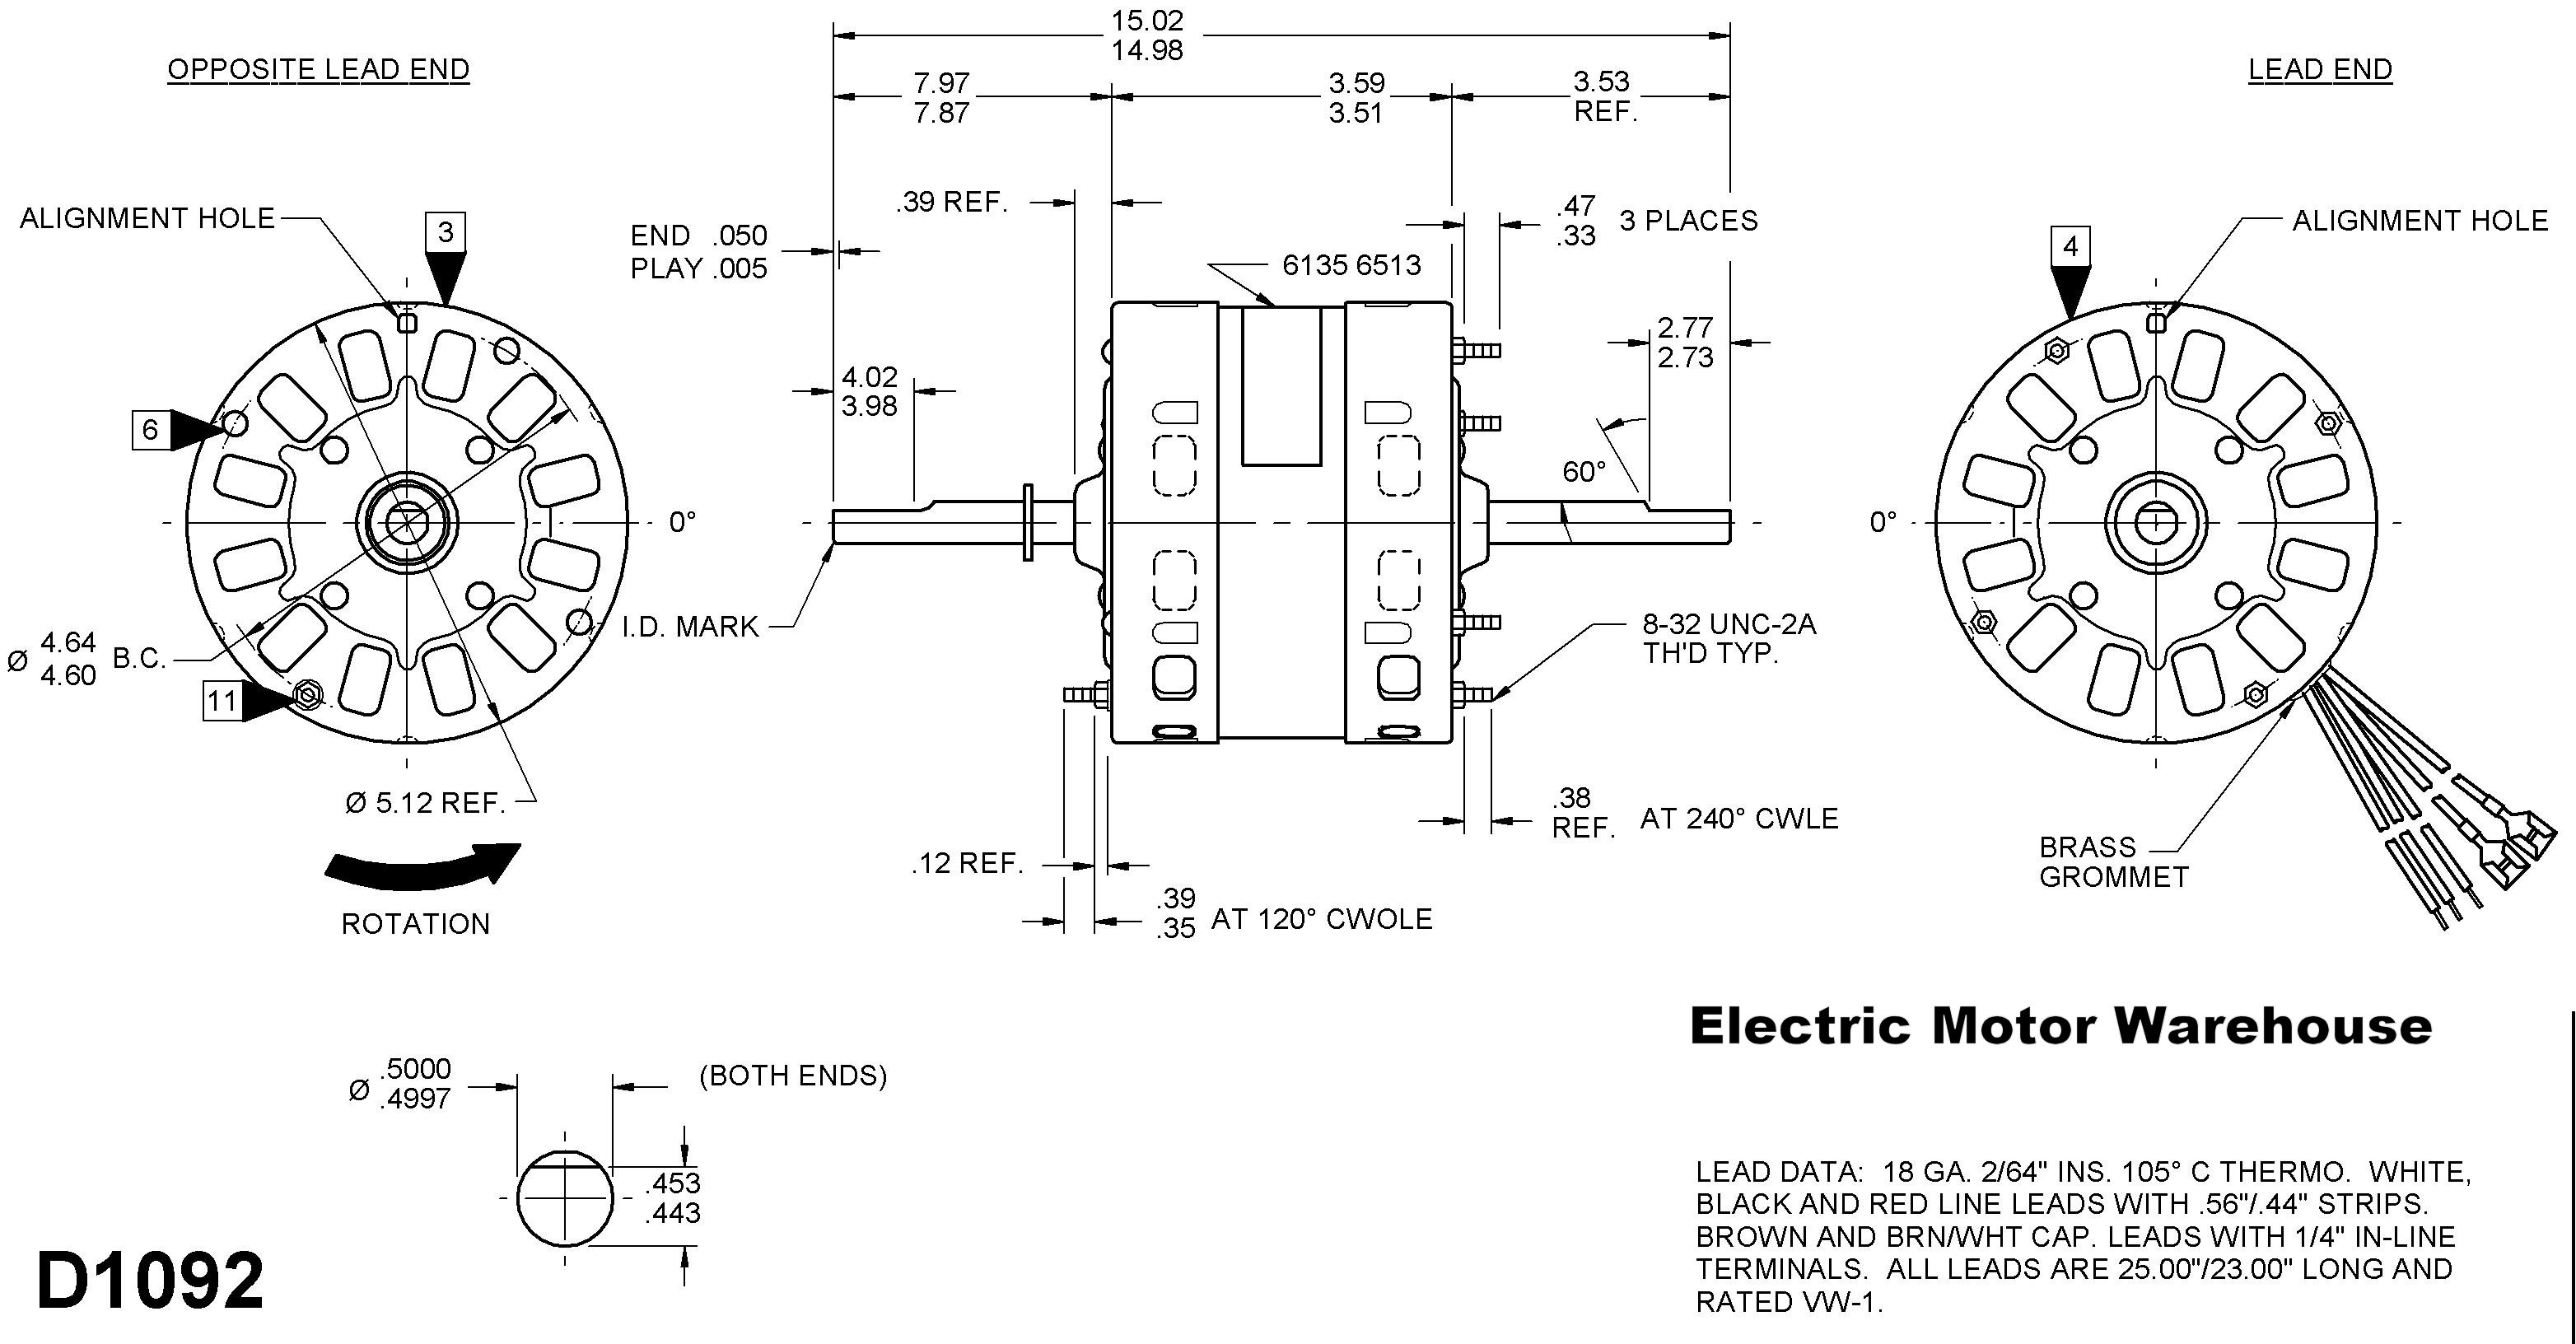 D1092_drawing 1 3 hp 115v 1625 rpm 2 speed rv air conditioner motor (7184 0156 Coleman Mach Thermostat Wiring Diagram at gsmx.co